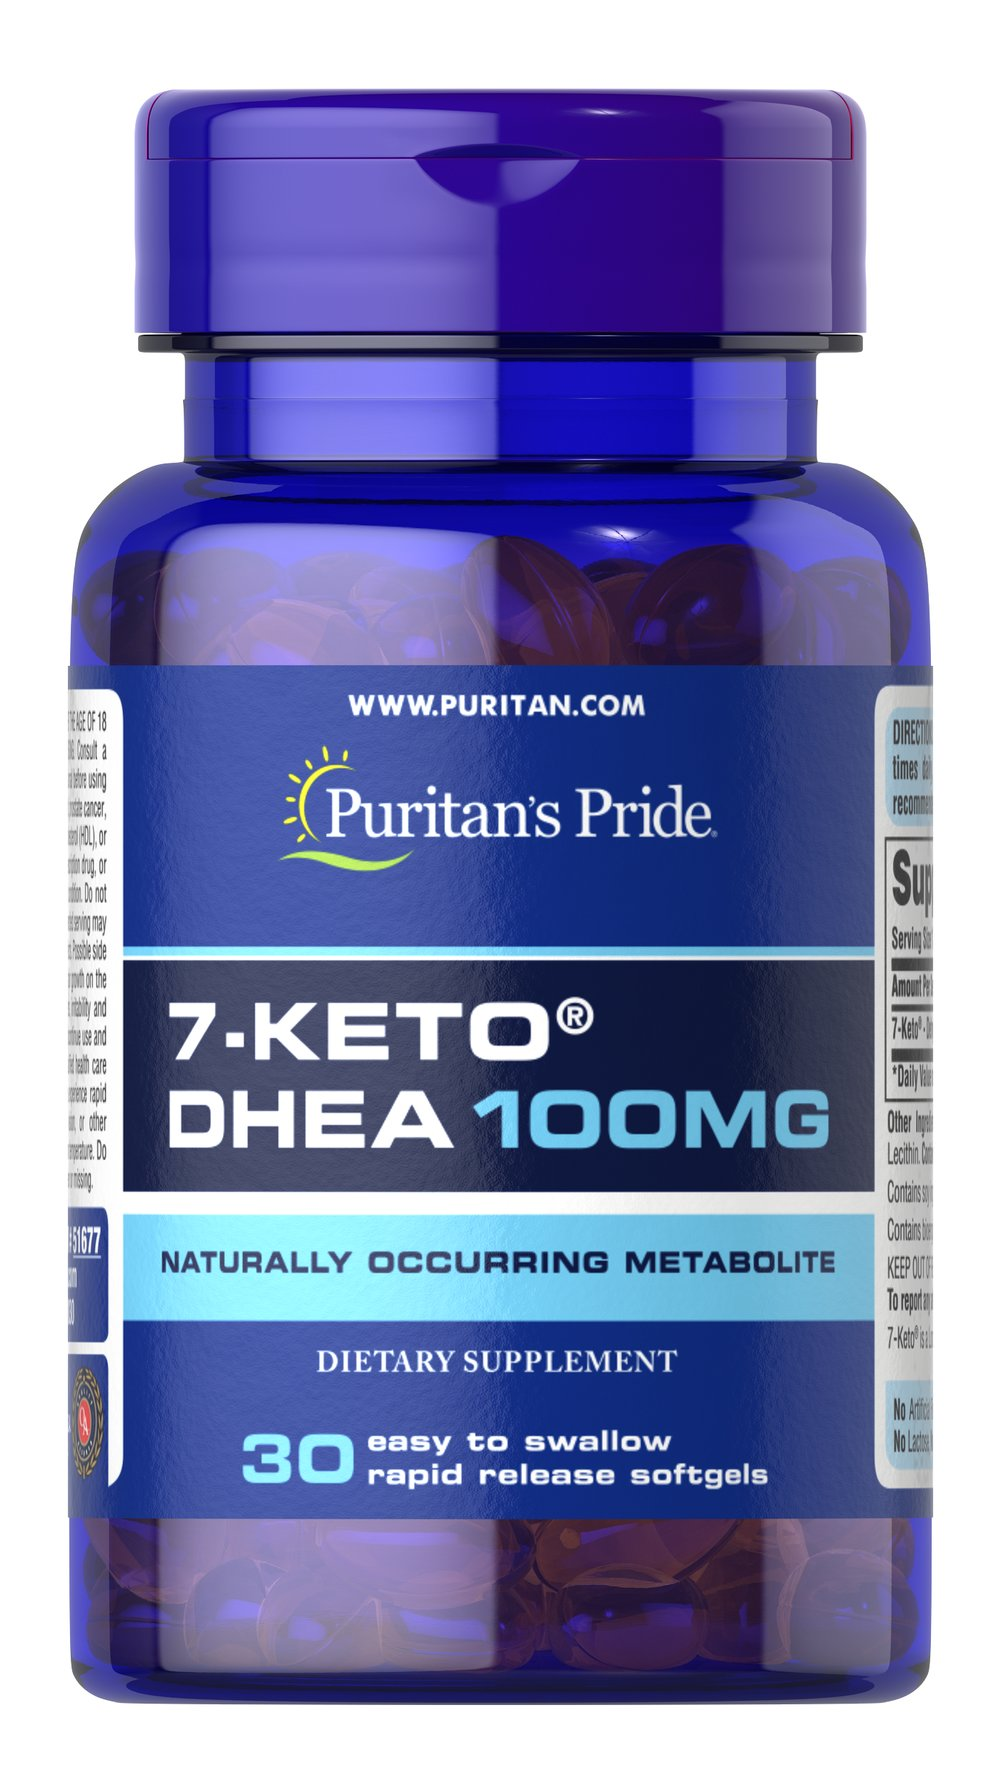 7-Keto® DHEA 100 mg <p>Naturally occurring metabolite.</p><p>100mg of DHEA in one softgel.</p><p>Rapid release.</p><p>7-Keto® is a naturally occurring metabolite of DHEA found in the body.  Levels of DHEA may decline with age, and 7-Keto® provides you with DHEA in an easy to swallow softgel. One serving of this dietary supplement provides 100mg of DHEA. Includes 30 rapid release softgels.</p> 30 Softgels 100 mg $26.99